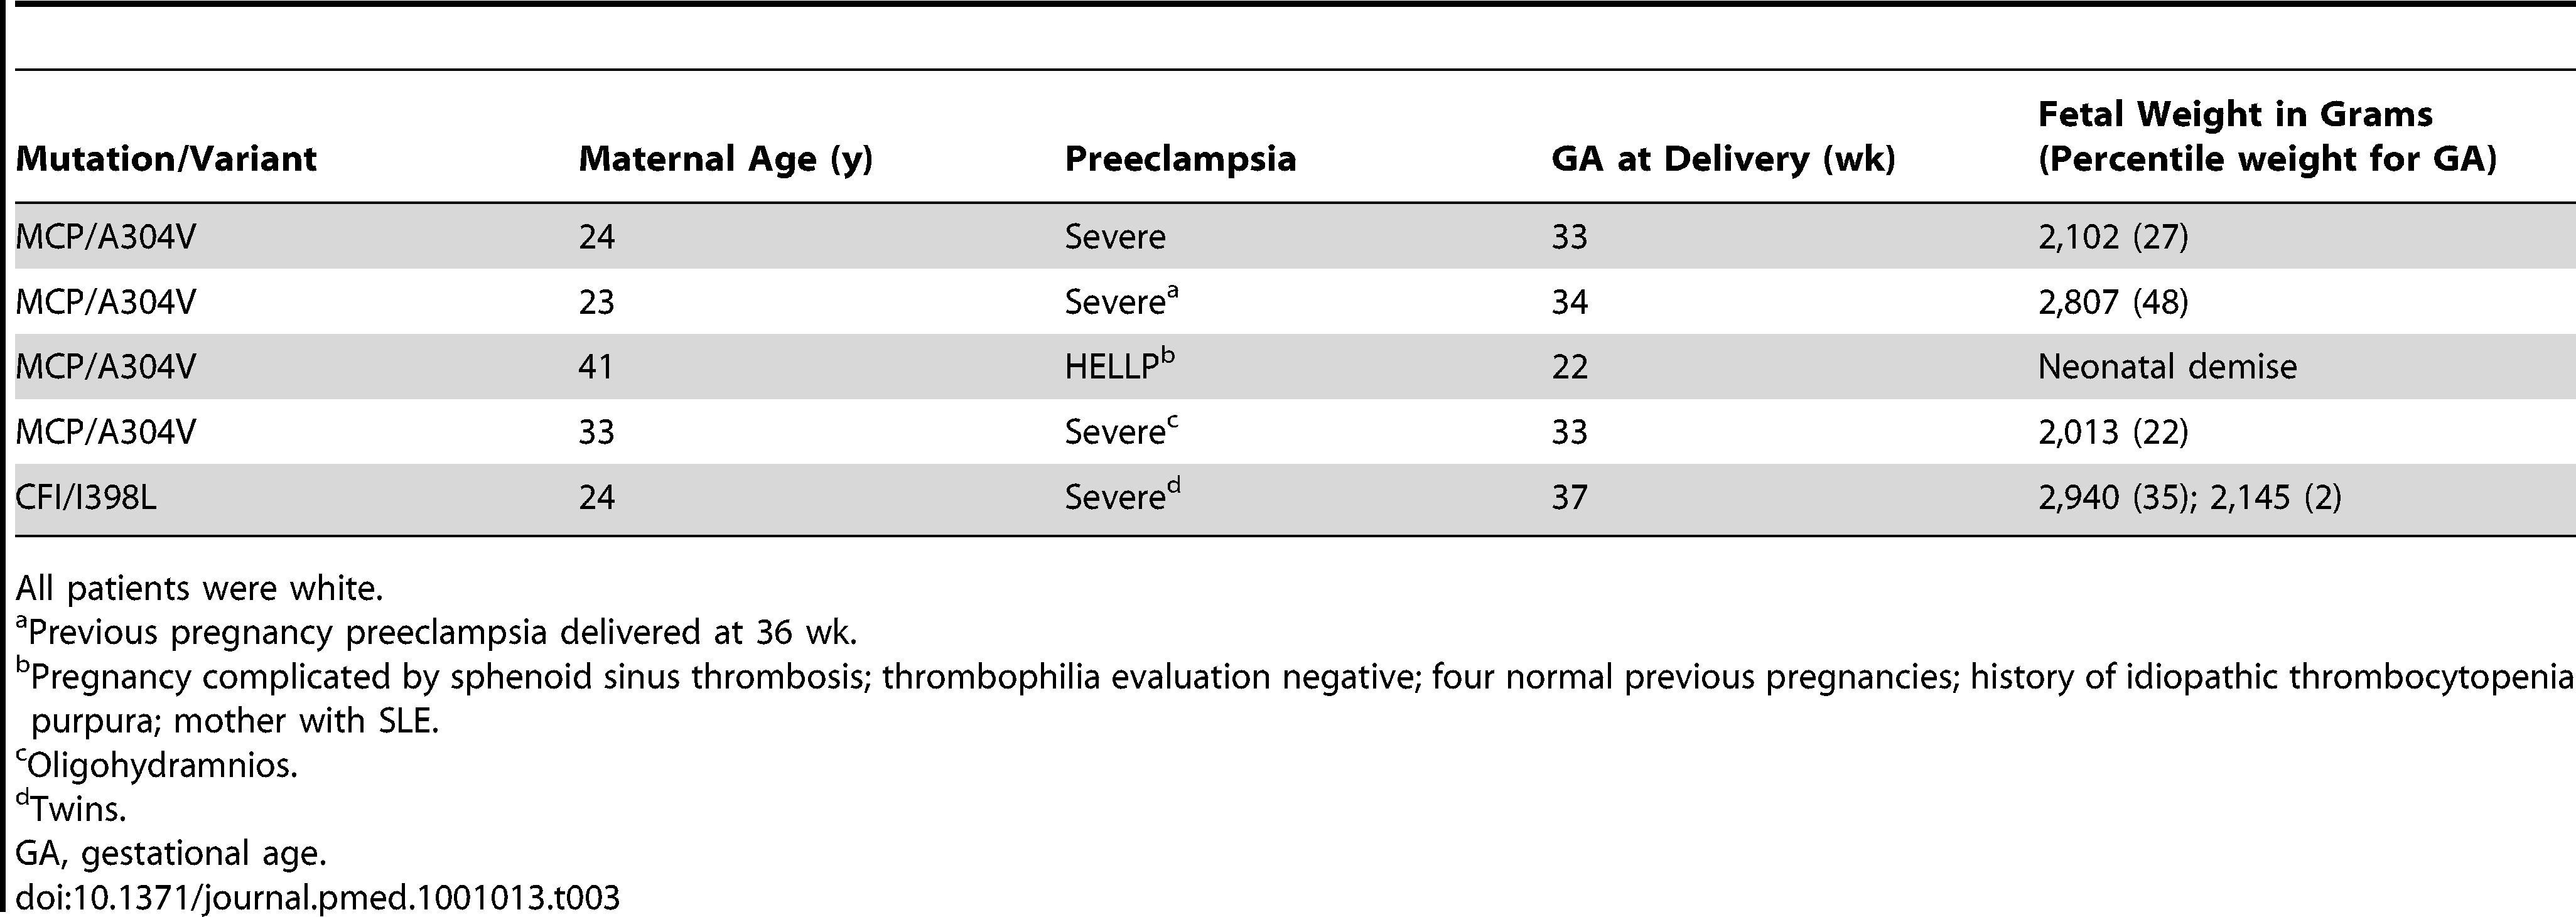 Clinical characteristics of non-autoimmune preeclampsia patients with complement regulatory protein mutations.